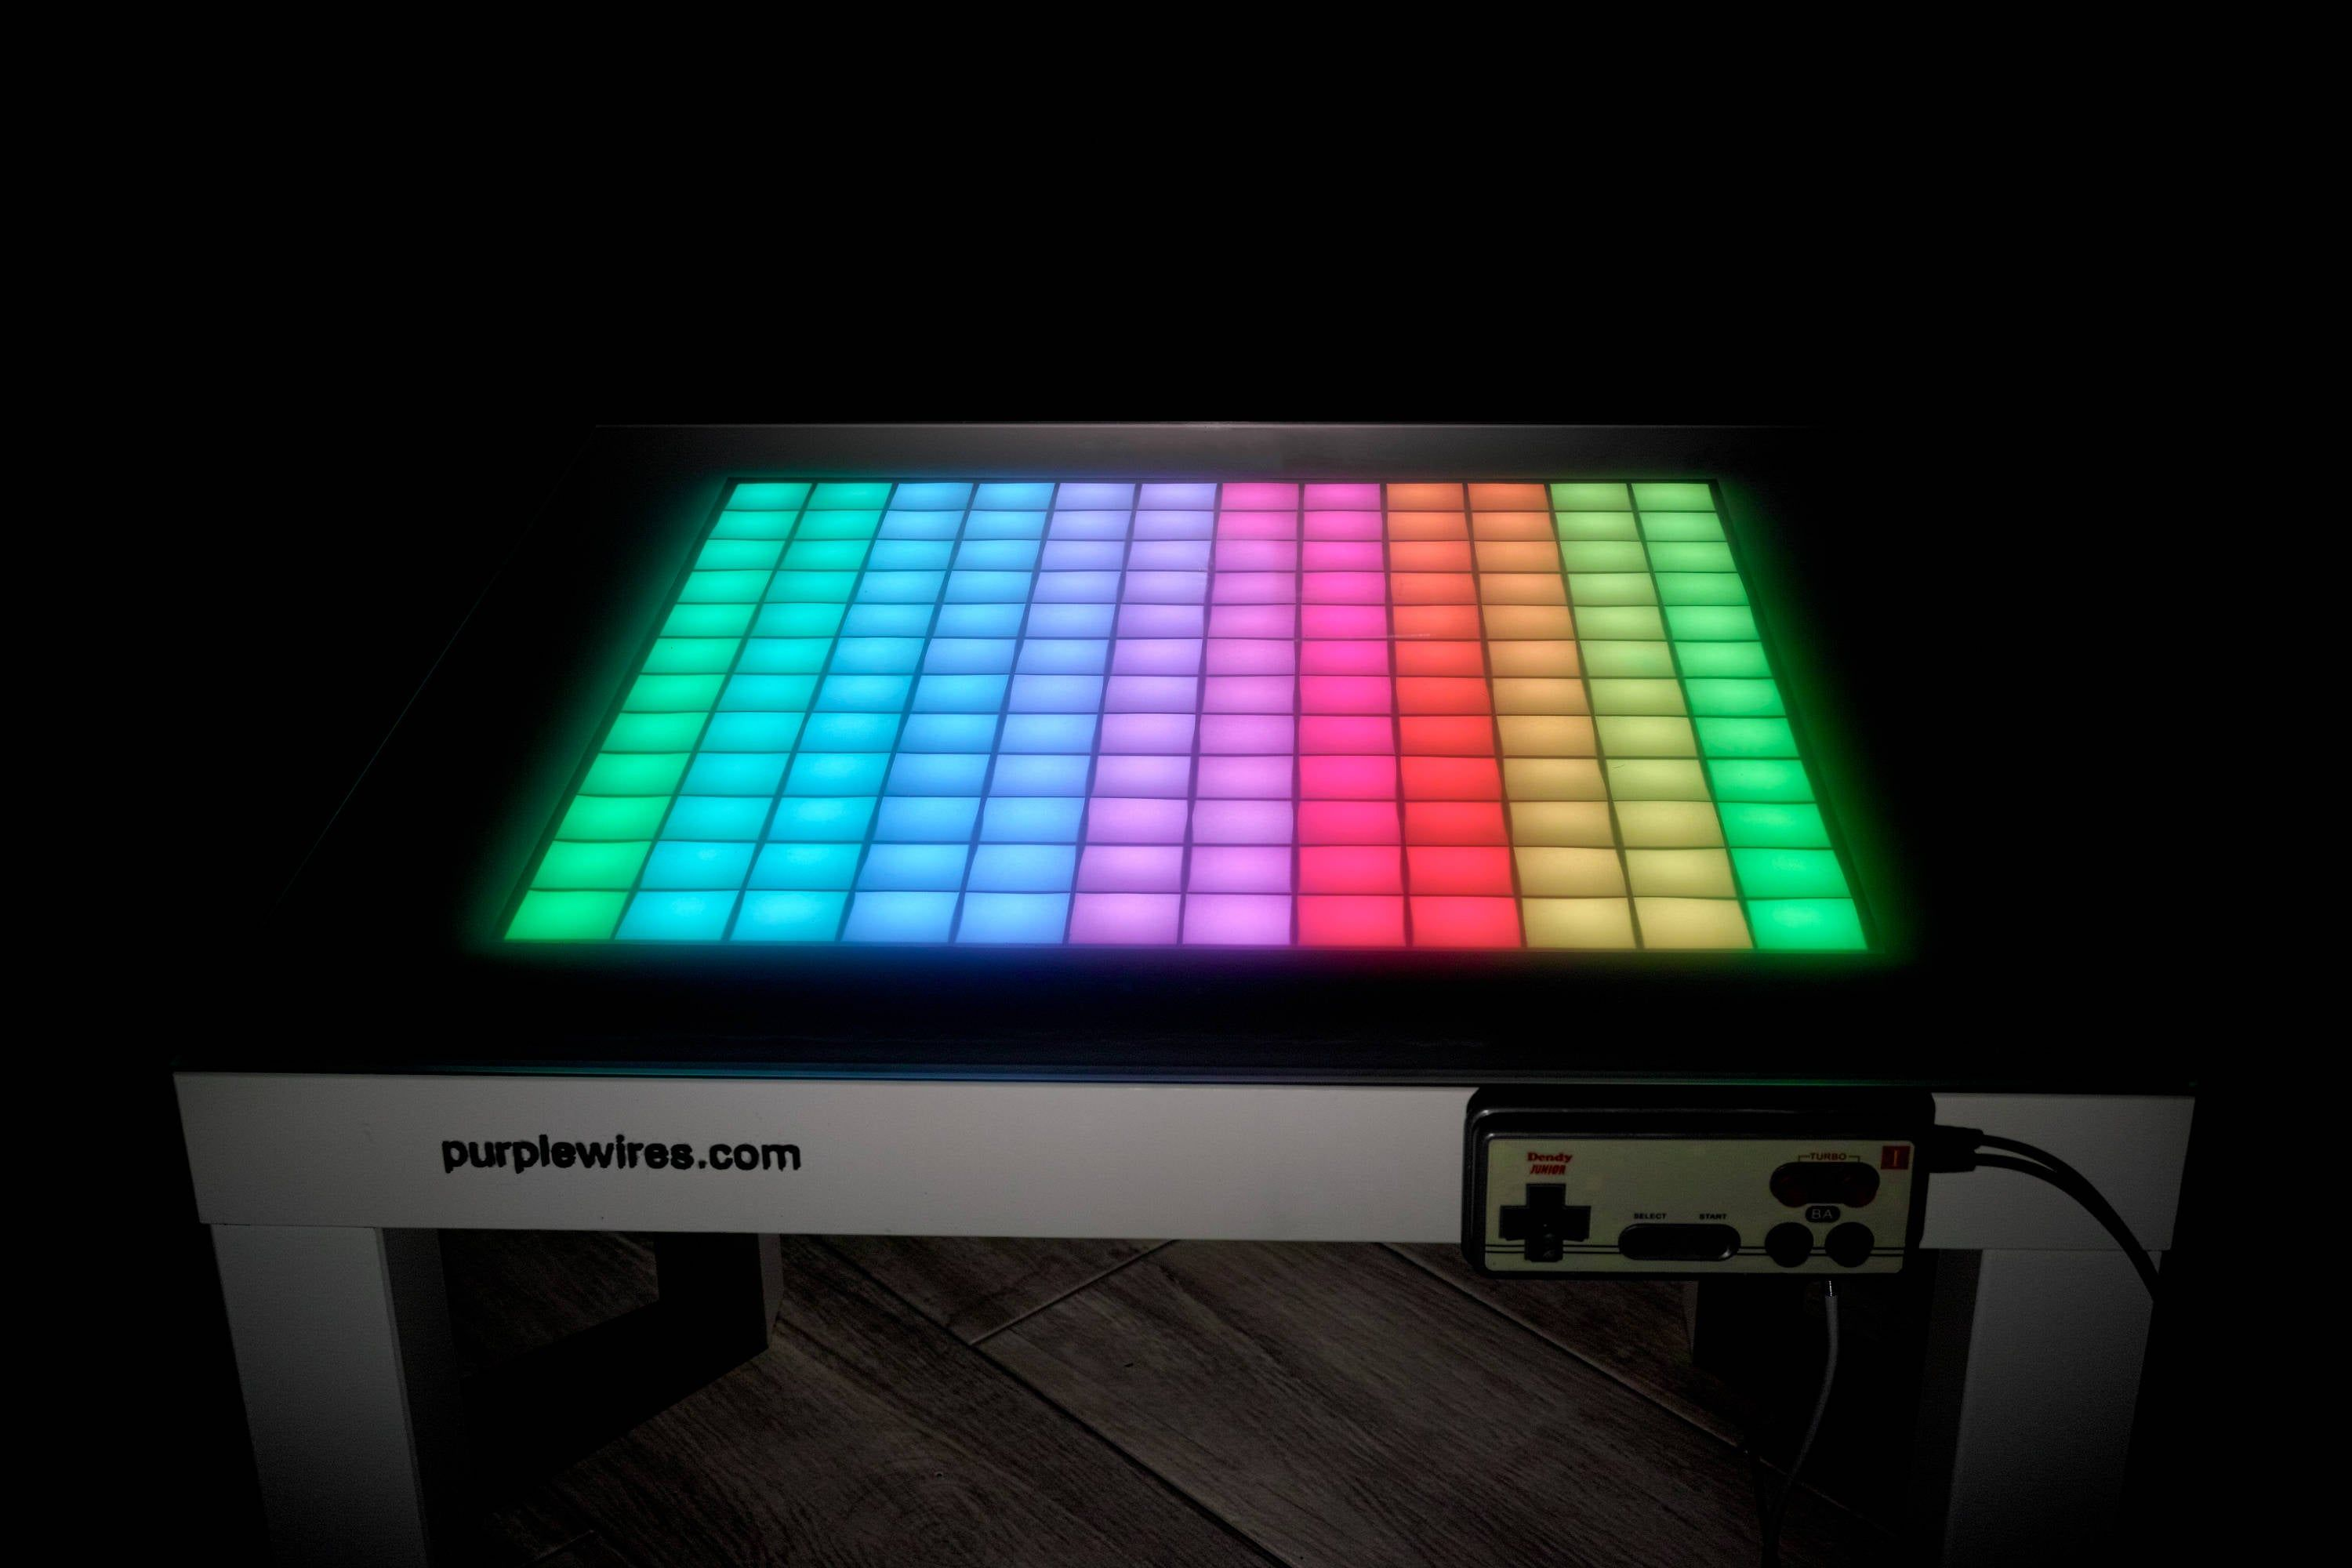 Led Game Console Retro Video Game Game Coffee Table Led Etsy In 2020 Retro Games Console Tetris Game Retro Video Games